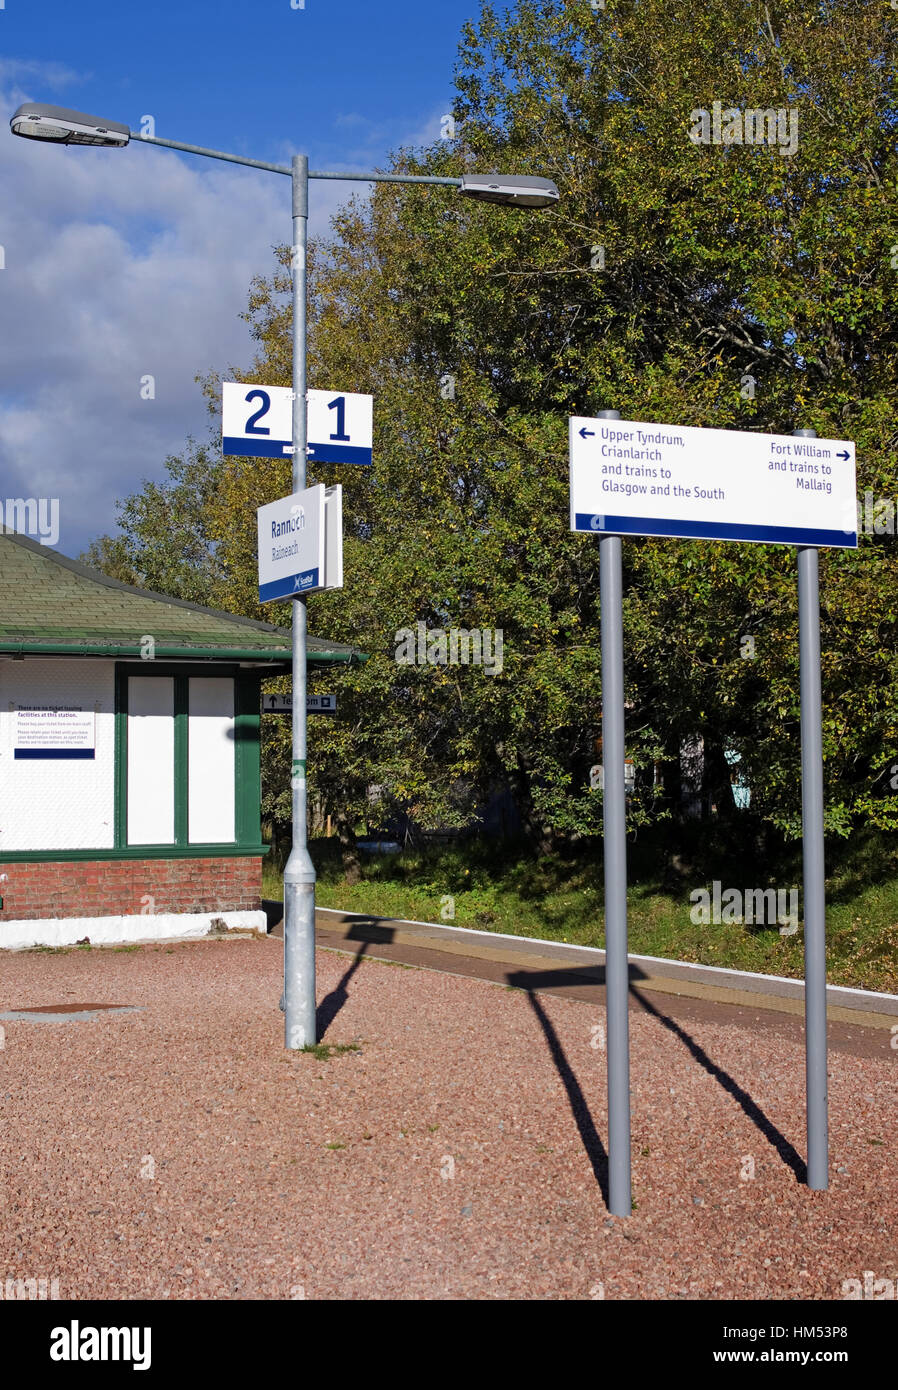 Information signs showing platform numbers and train destinations, on the platform at Rannoch Station, Perthshire, - Stock Image